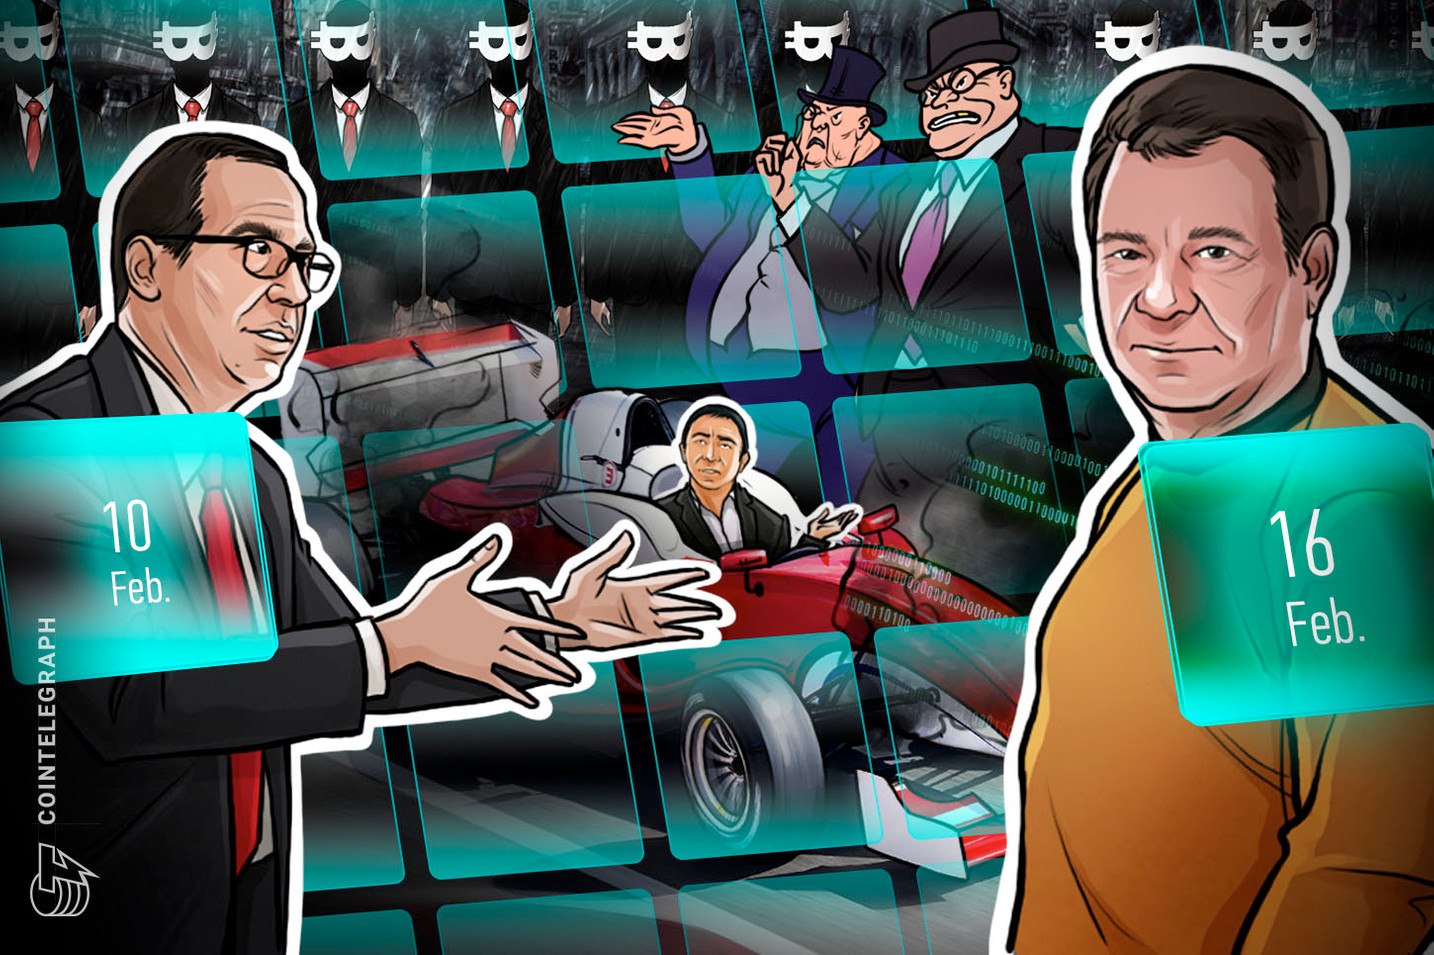 BTC Correction, Andrew Yang Out, William Shatner Attacks: Hodler's Digest, Feb. 10–16